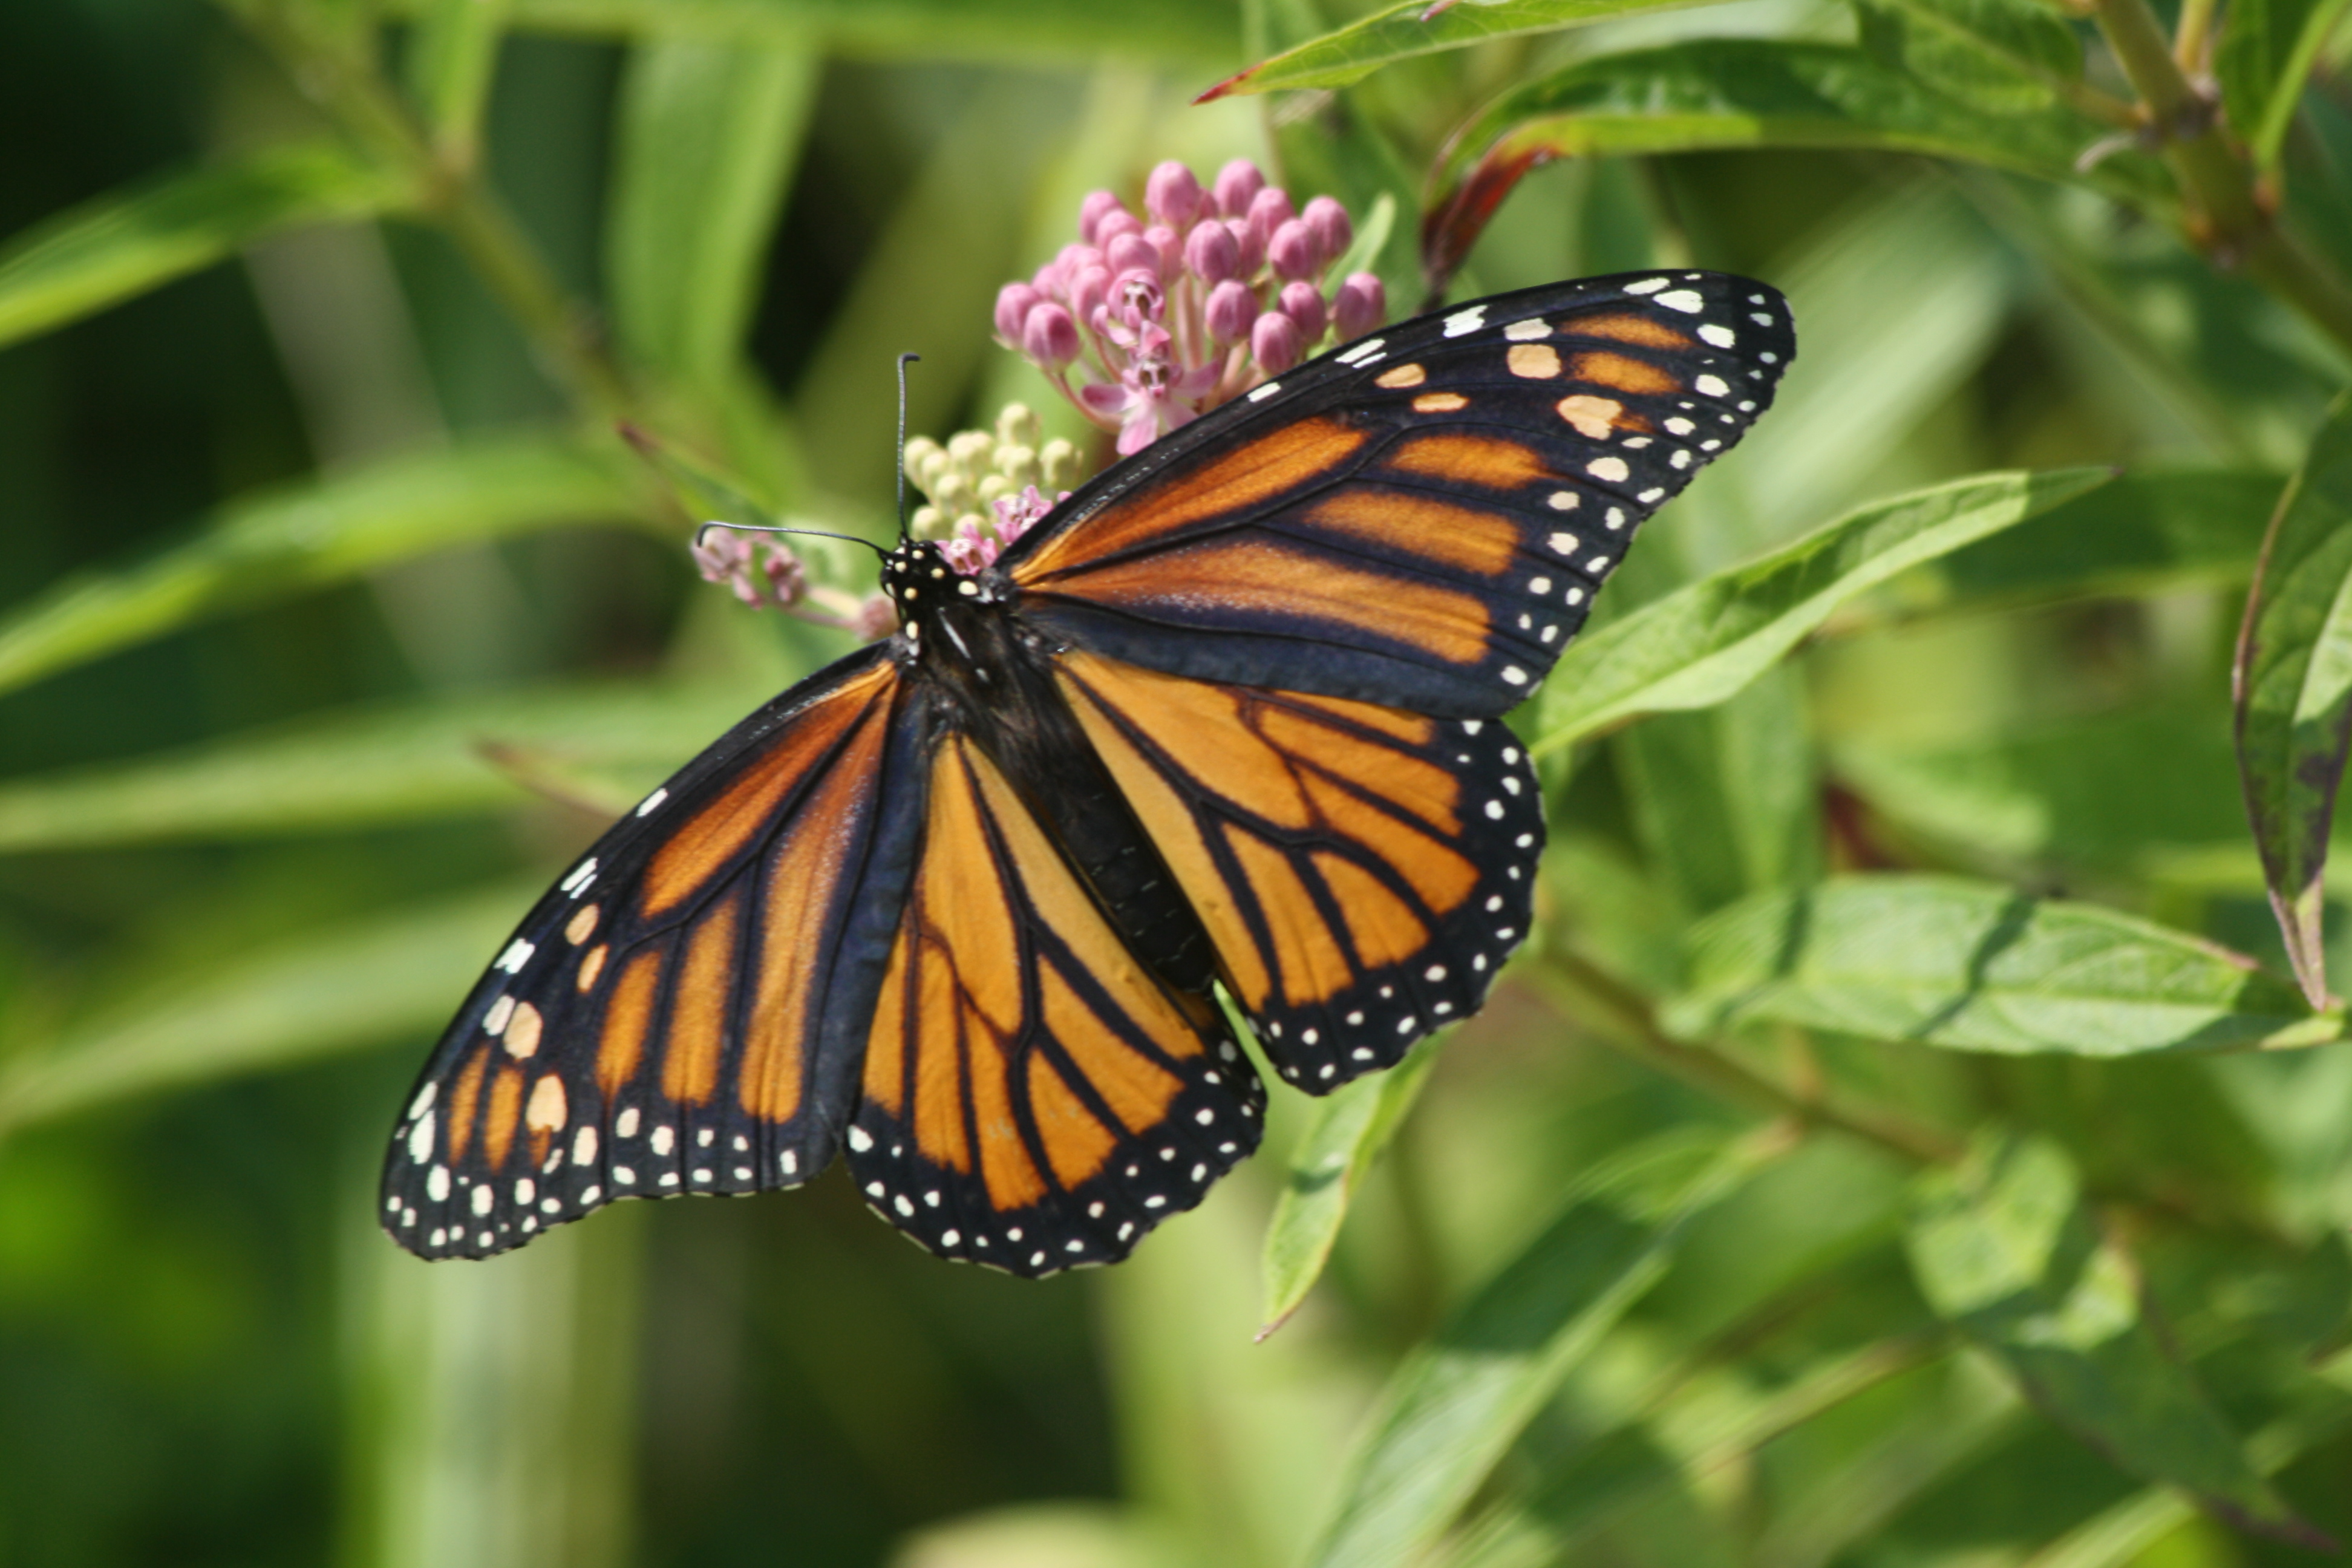 Some Good News For Monarchs